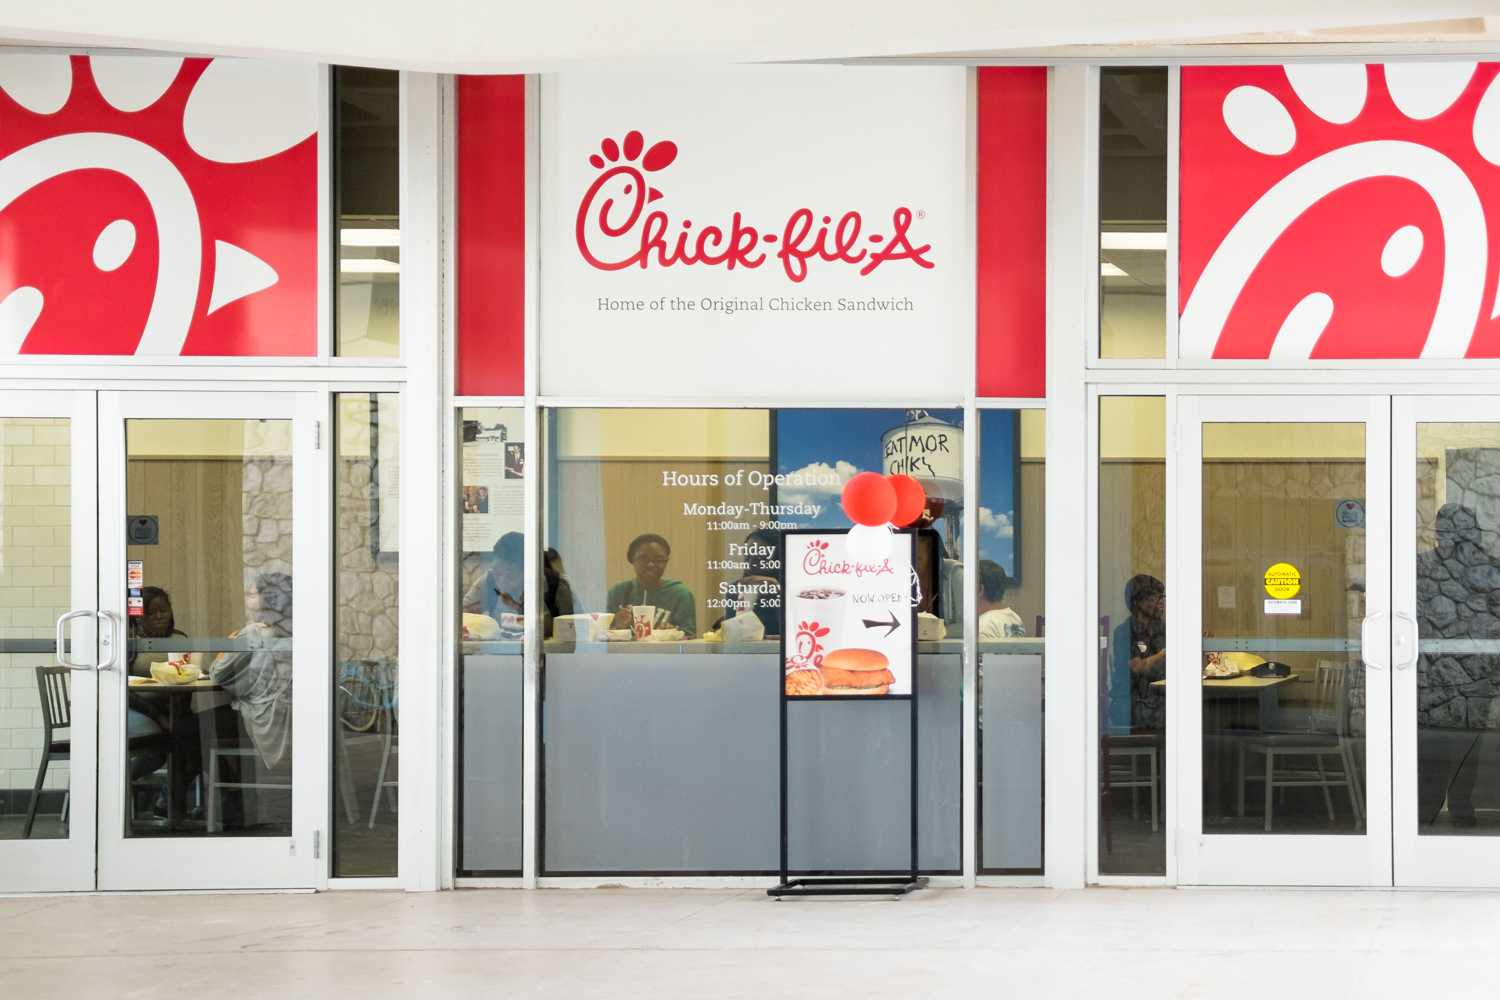 FAU's Chick-fil-A is now open. It is located next to FAU's Library. Mohammed F Emran | Web Editor